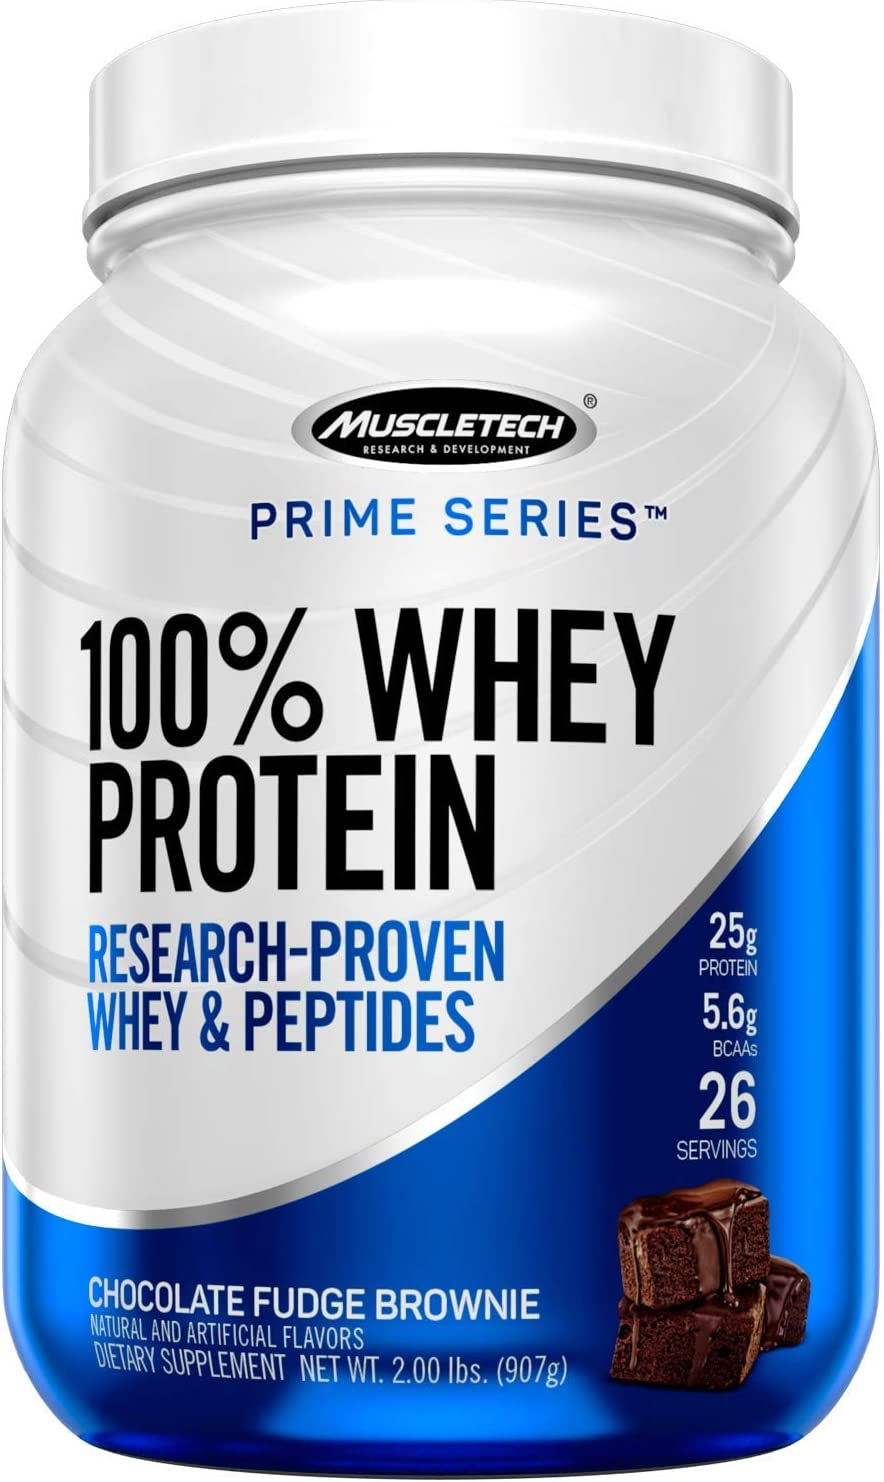 MuscleTech Prime Series 100 Whey Protein Powder, 25g Premium Protein, Research Proven Whey Peptides for Faster Absorption, Chocolate, 26 Servings 2.0lbs